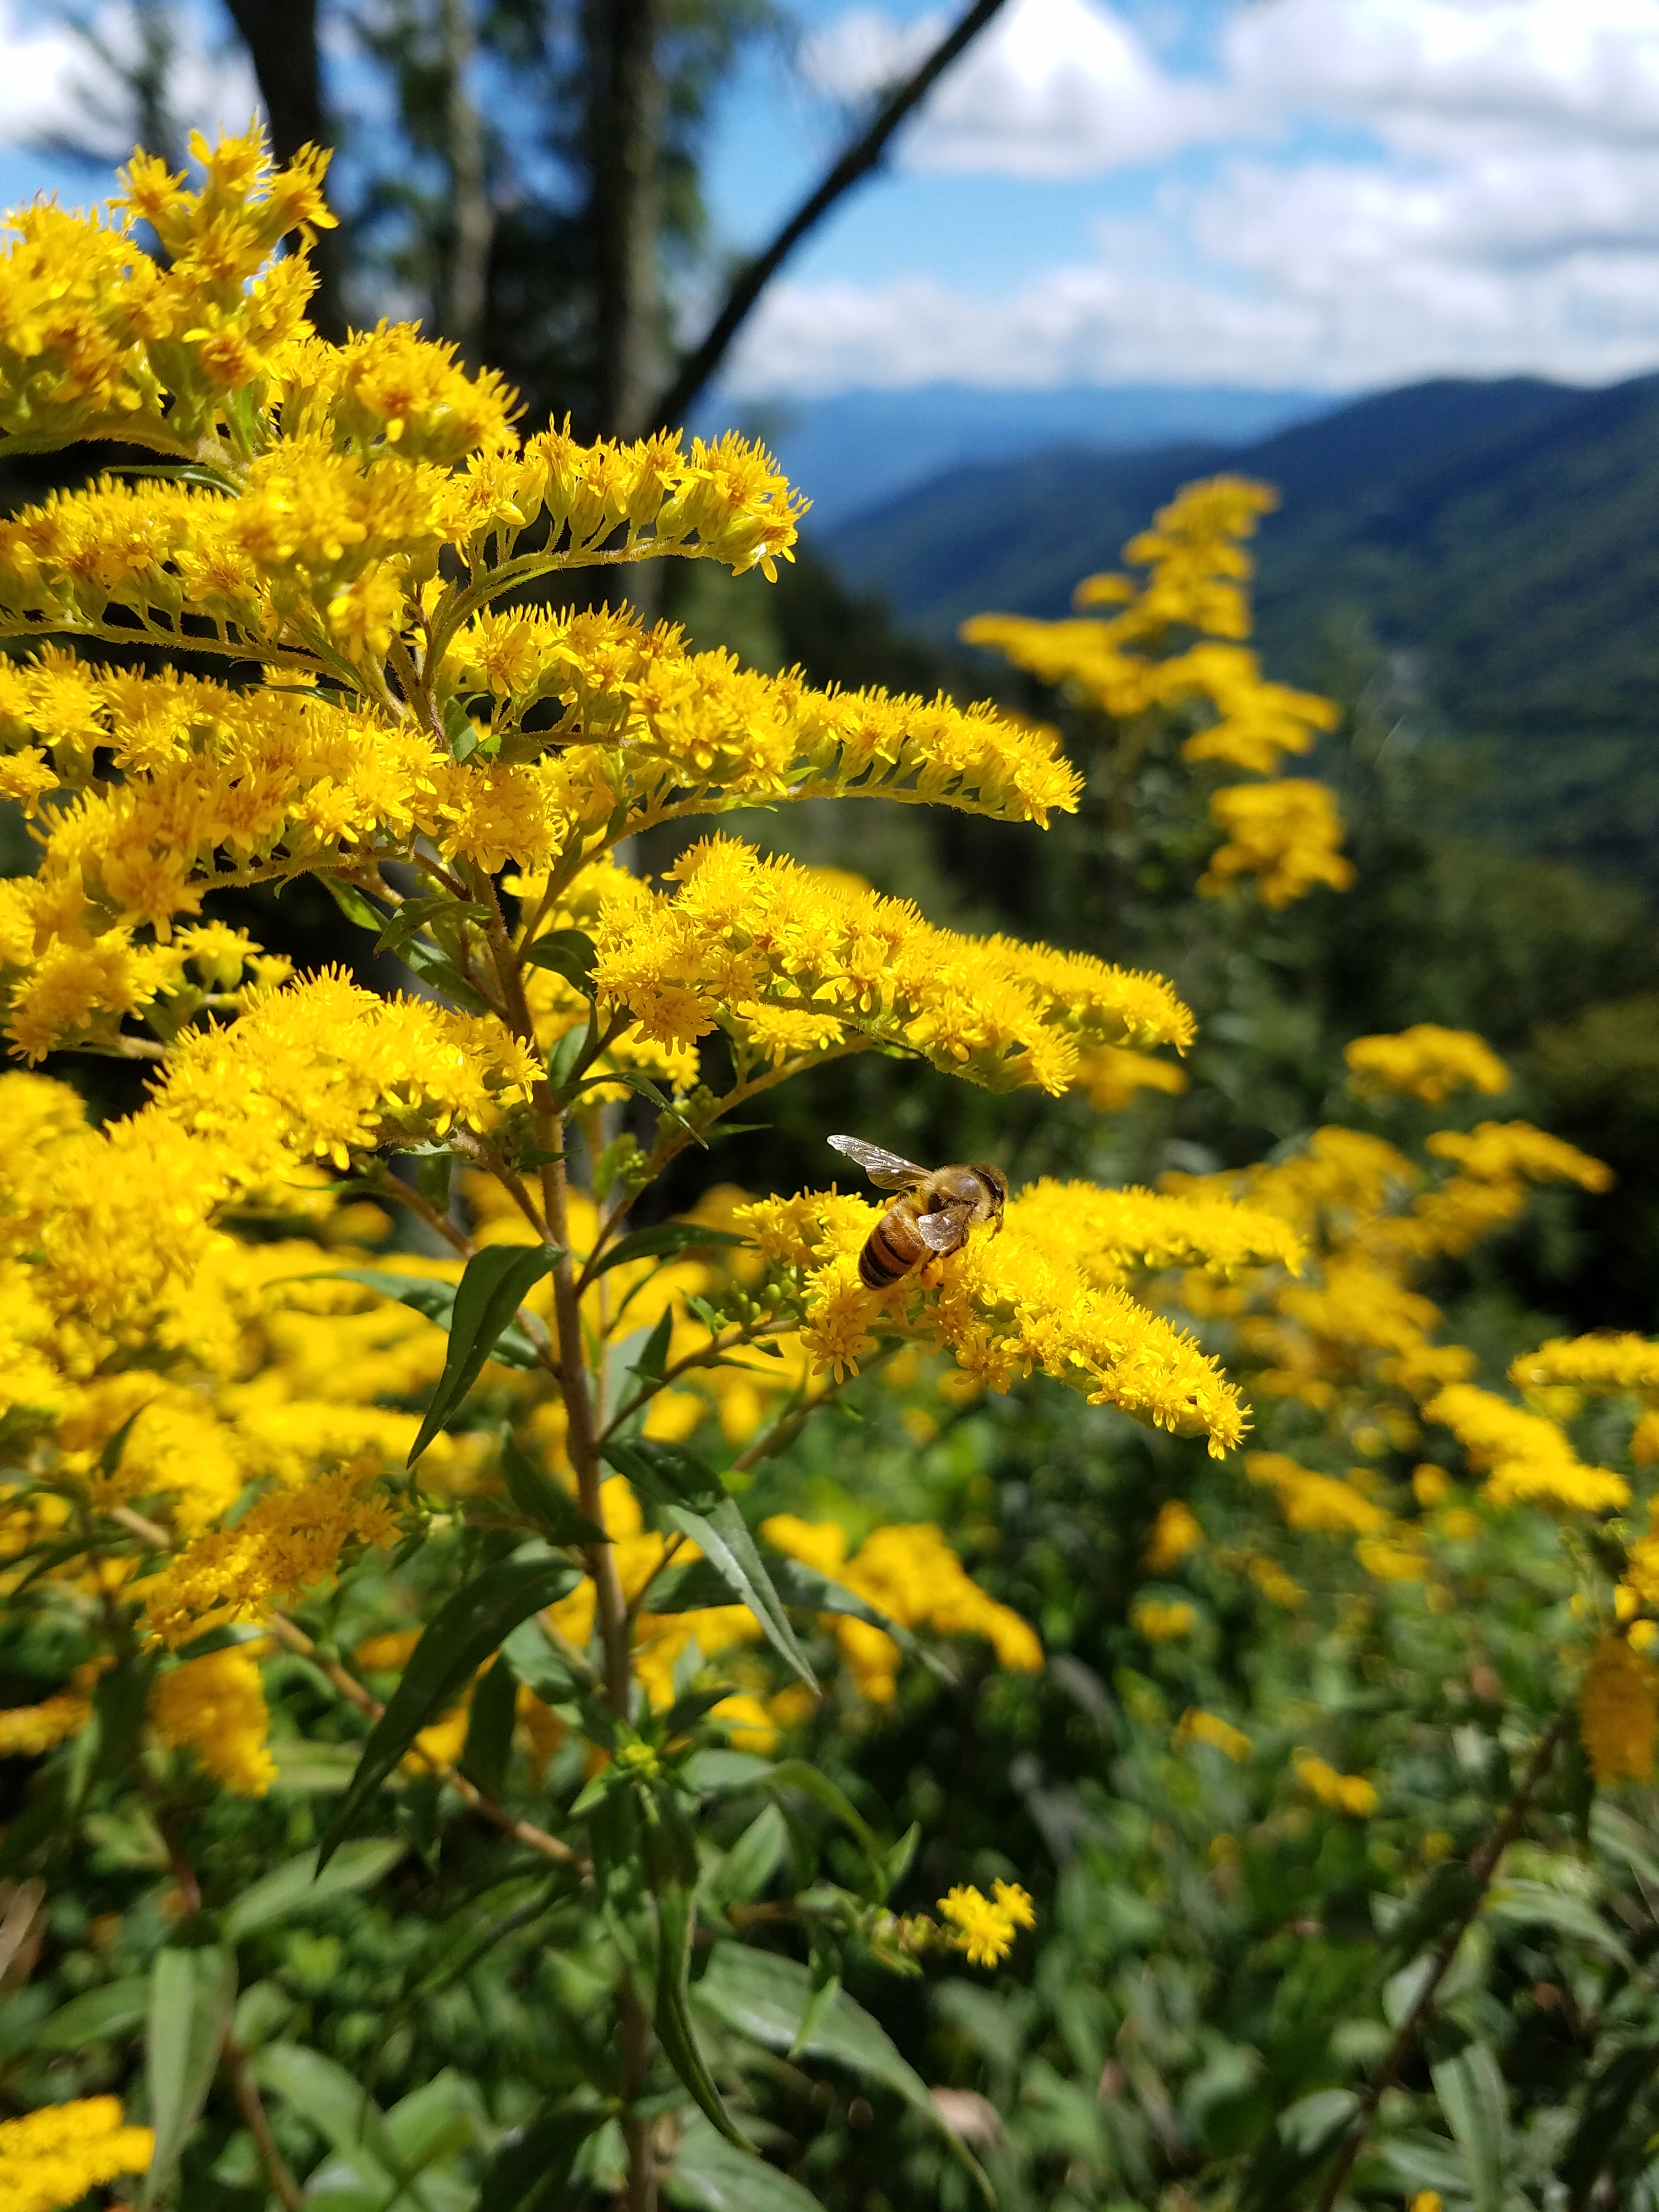 Fileblue Ridge Parkway Mountains Yellow Flower Milk Weed With